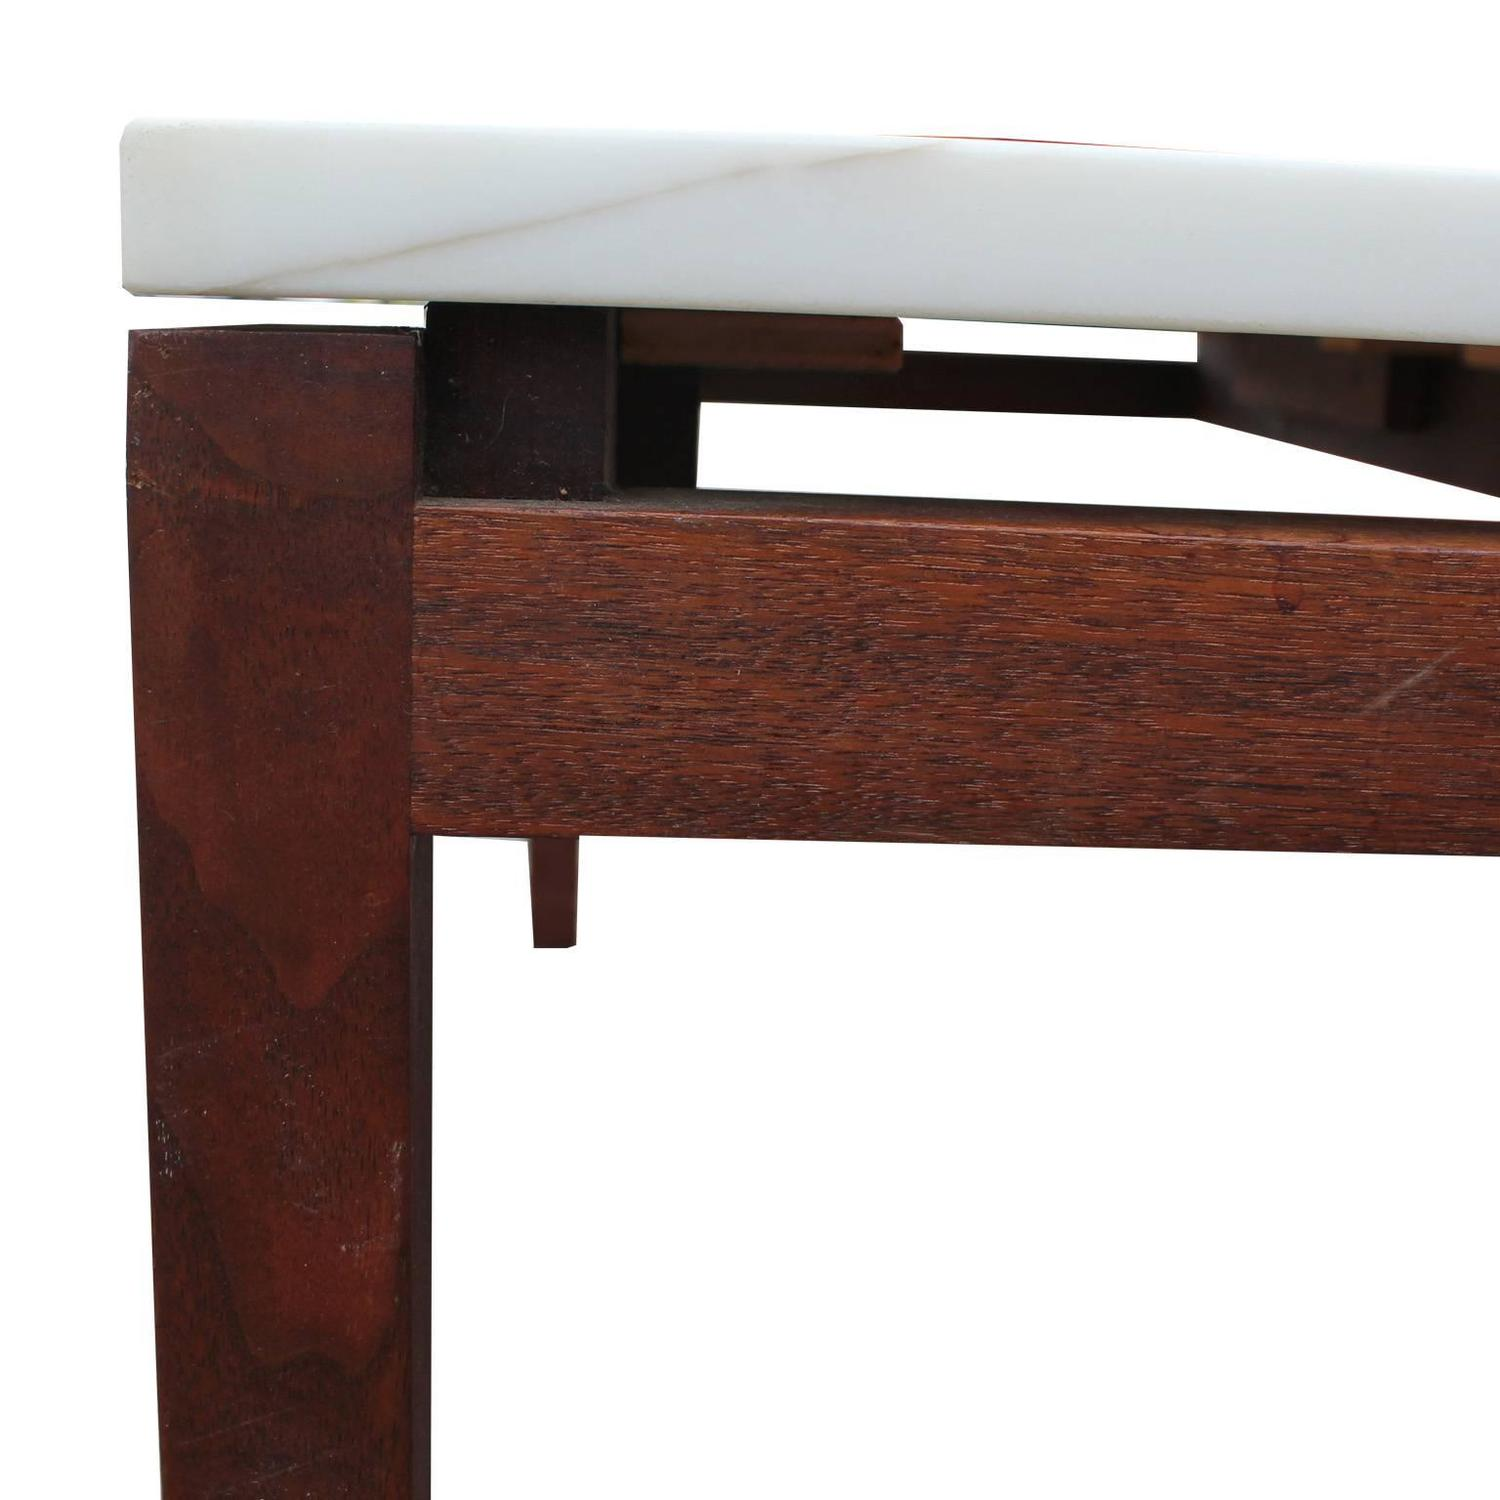 Marble Coffee Table Houston: Stunning Marble Square Knoll Lewis Butler Coffee Table For